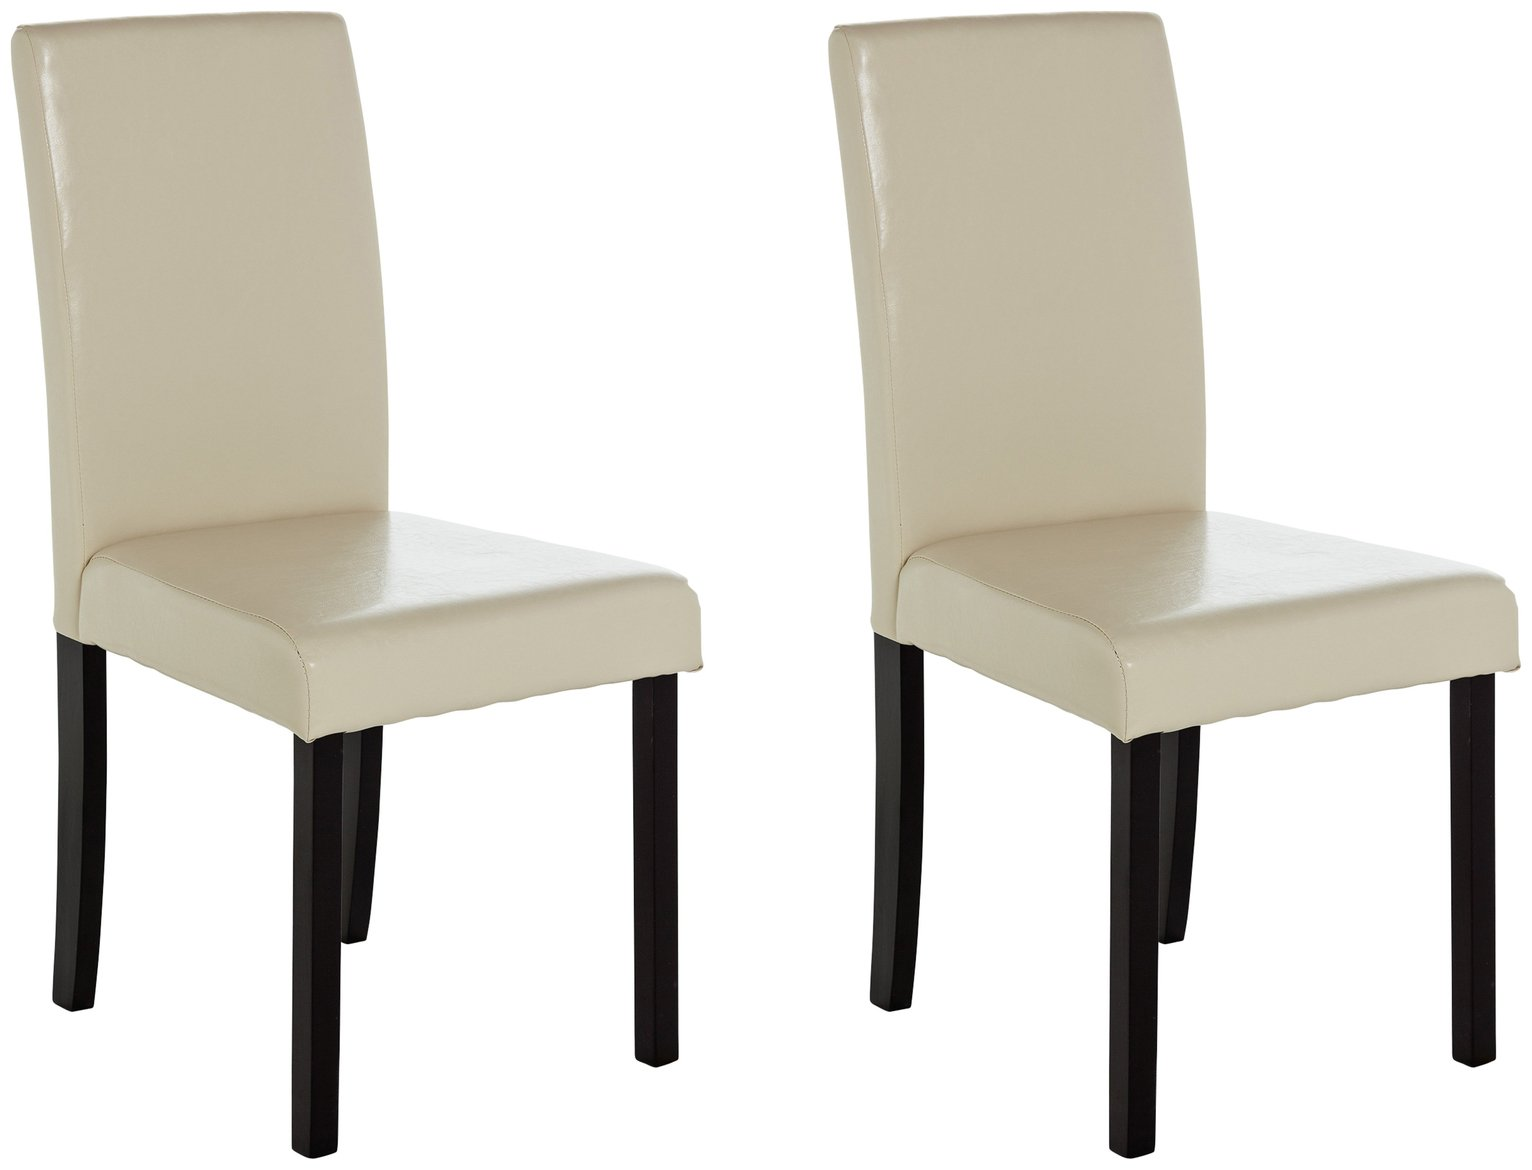 Argos Home Pair of Mid Back Leather Effect Chairs review